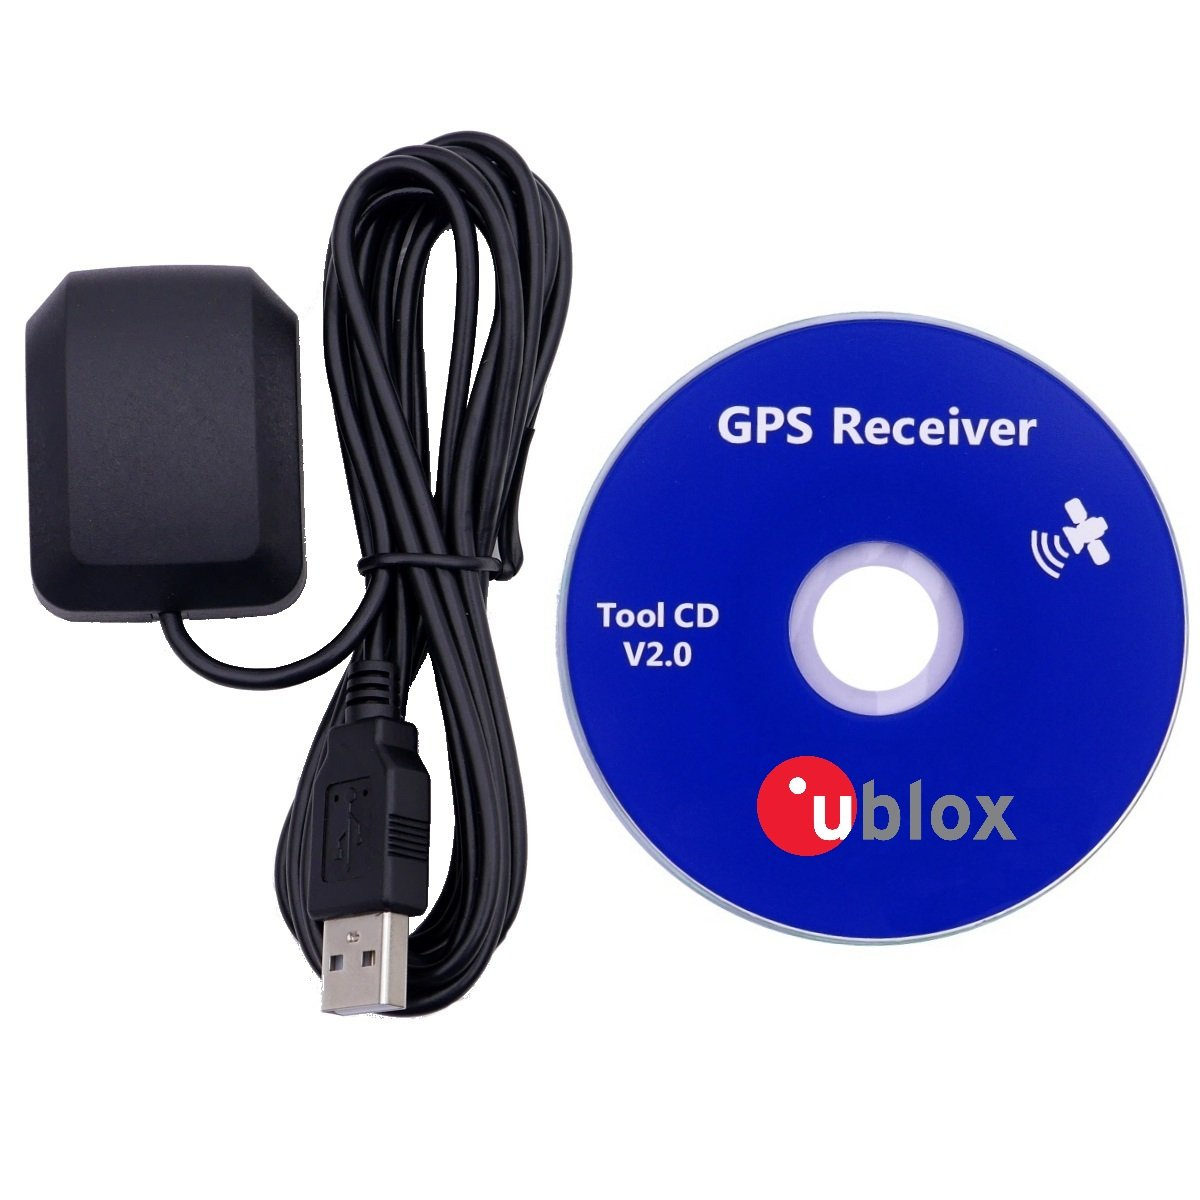 GPS USB, Dual Band, Glonass Active Receiver Antenna, Waterproof Device, Works with Laptop, Outdoor Navigator, Automobile Tracker, Streets Navigation Systems, Windows Compatible, 27 db Gain